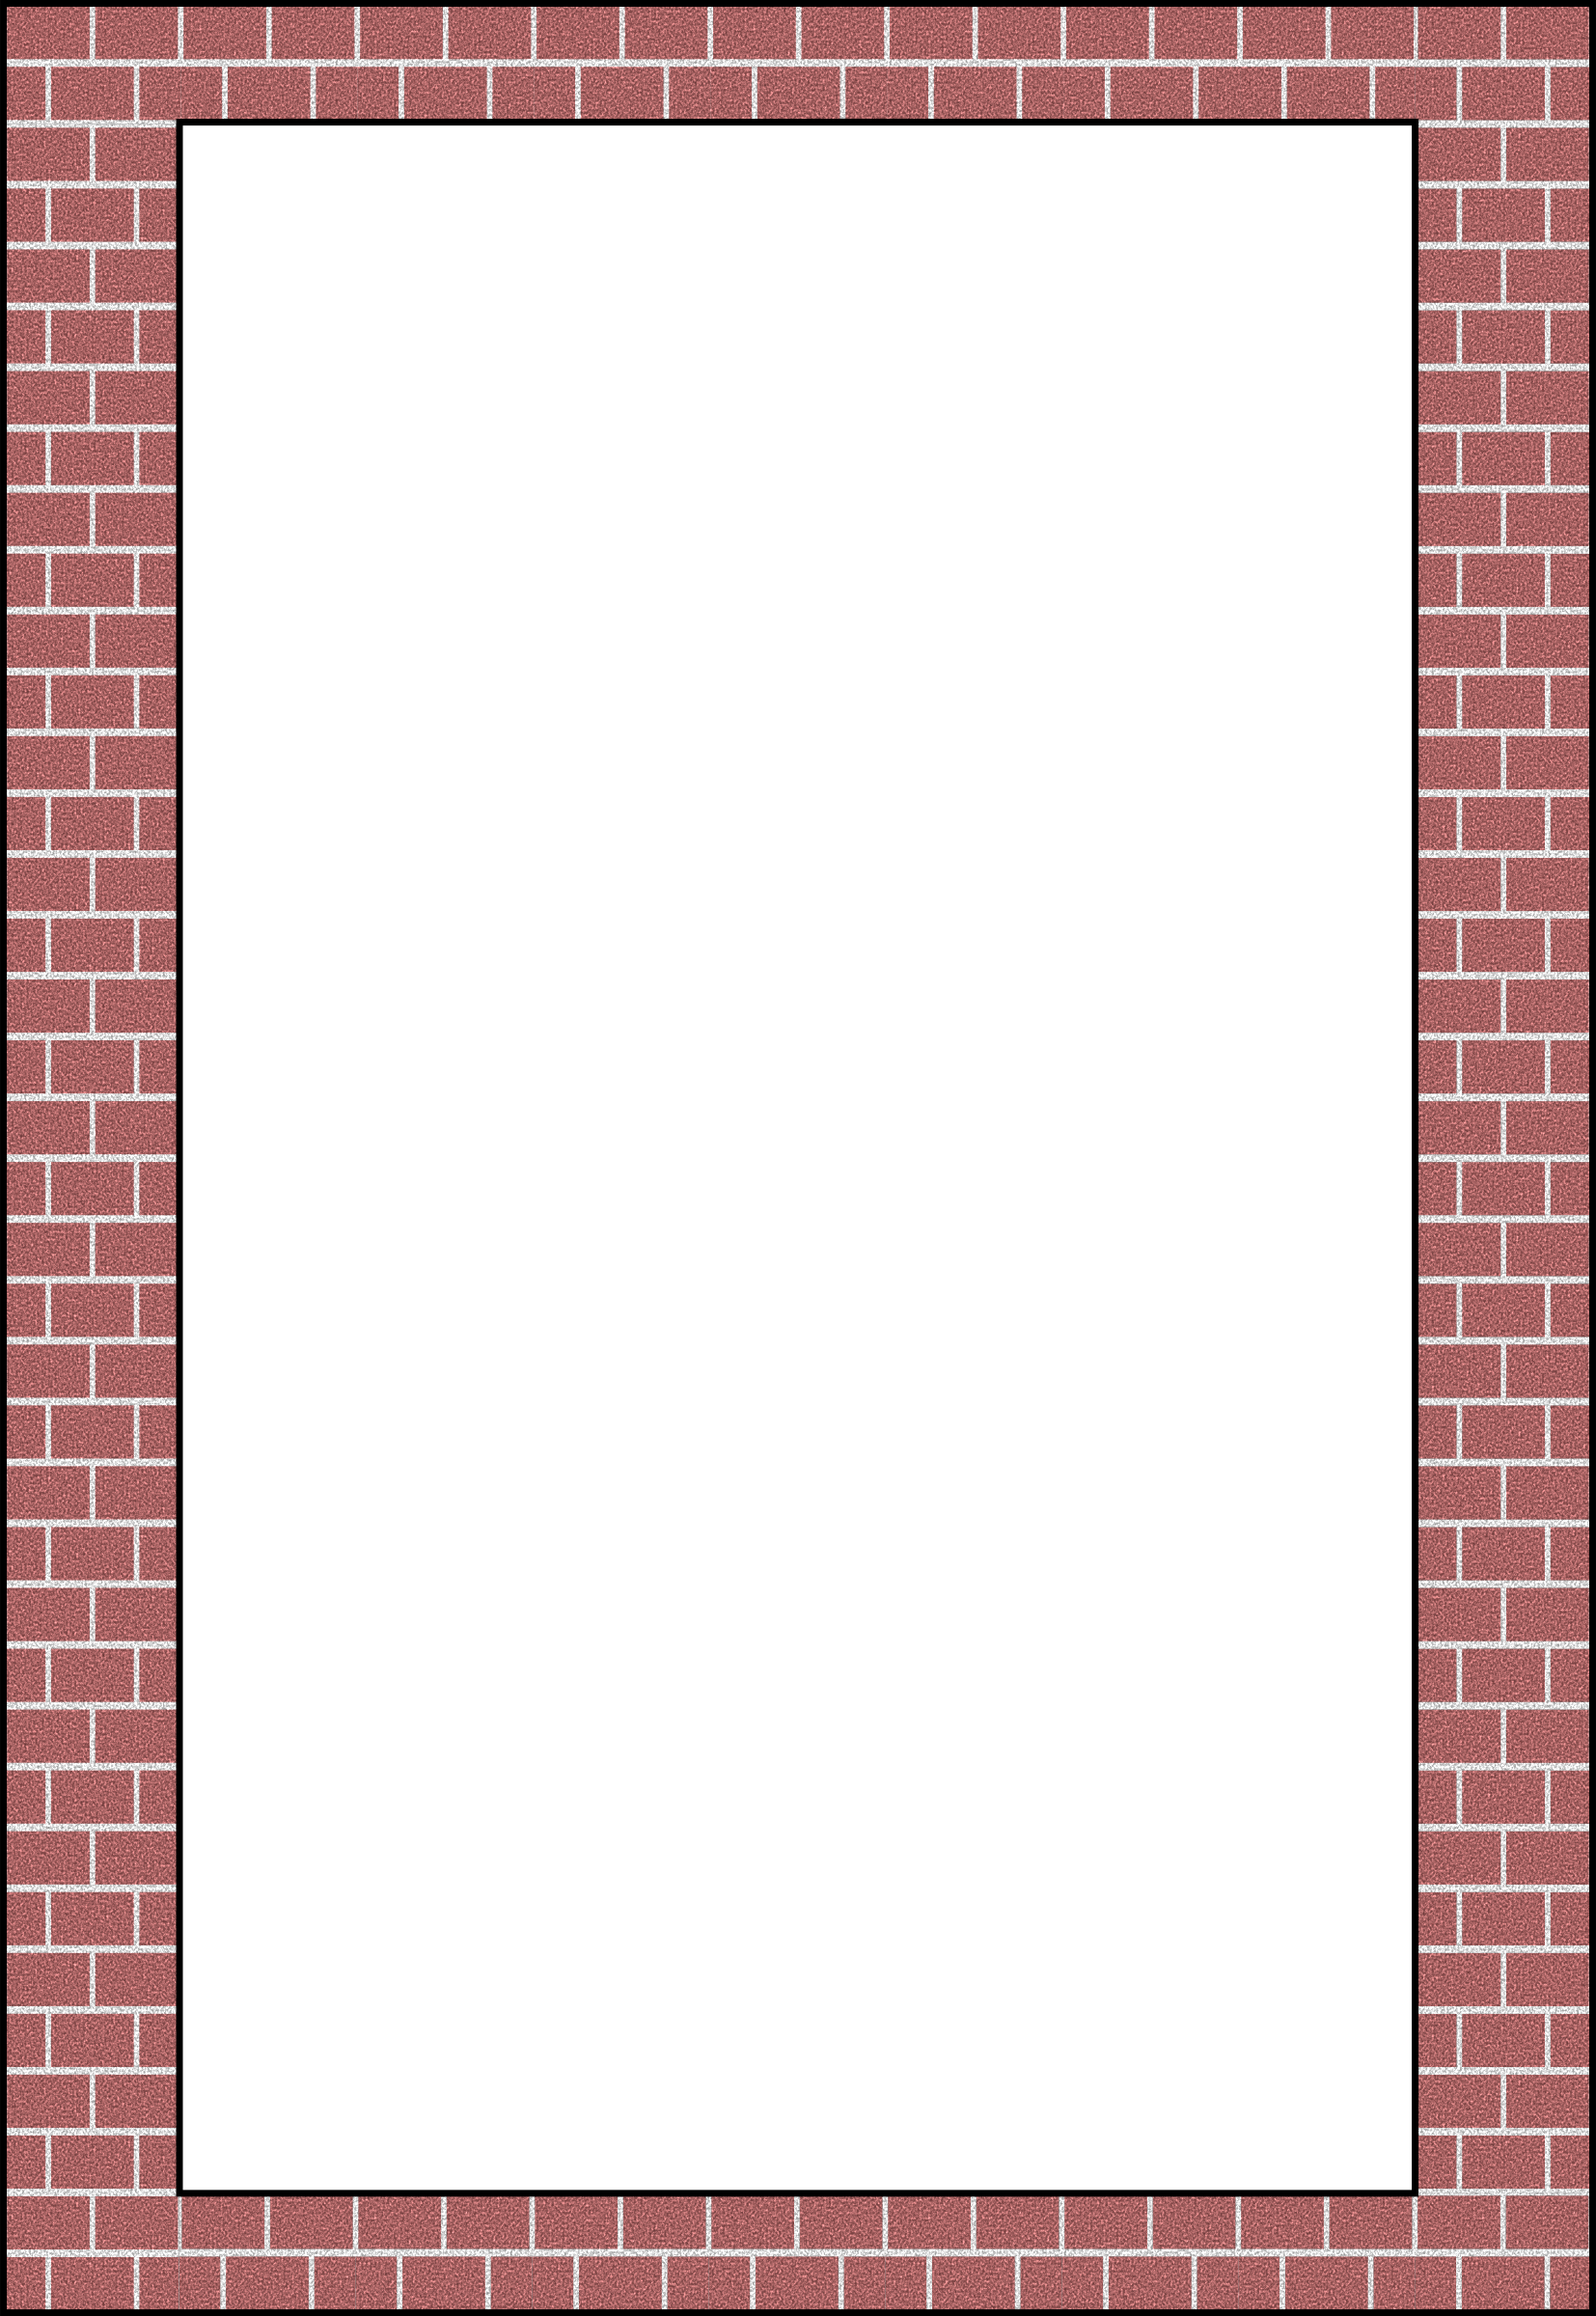 picture Brick clipart brick pathway. Openclipart org border by